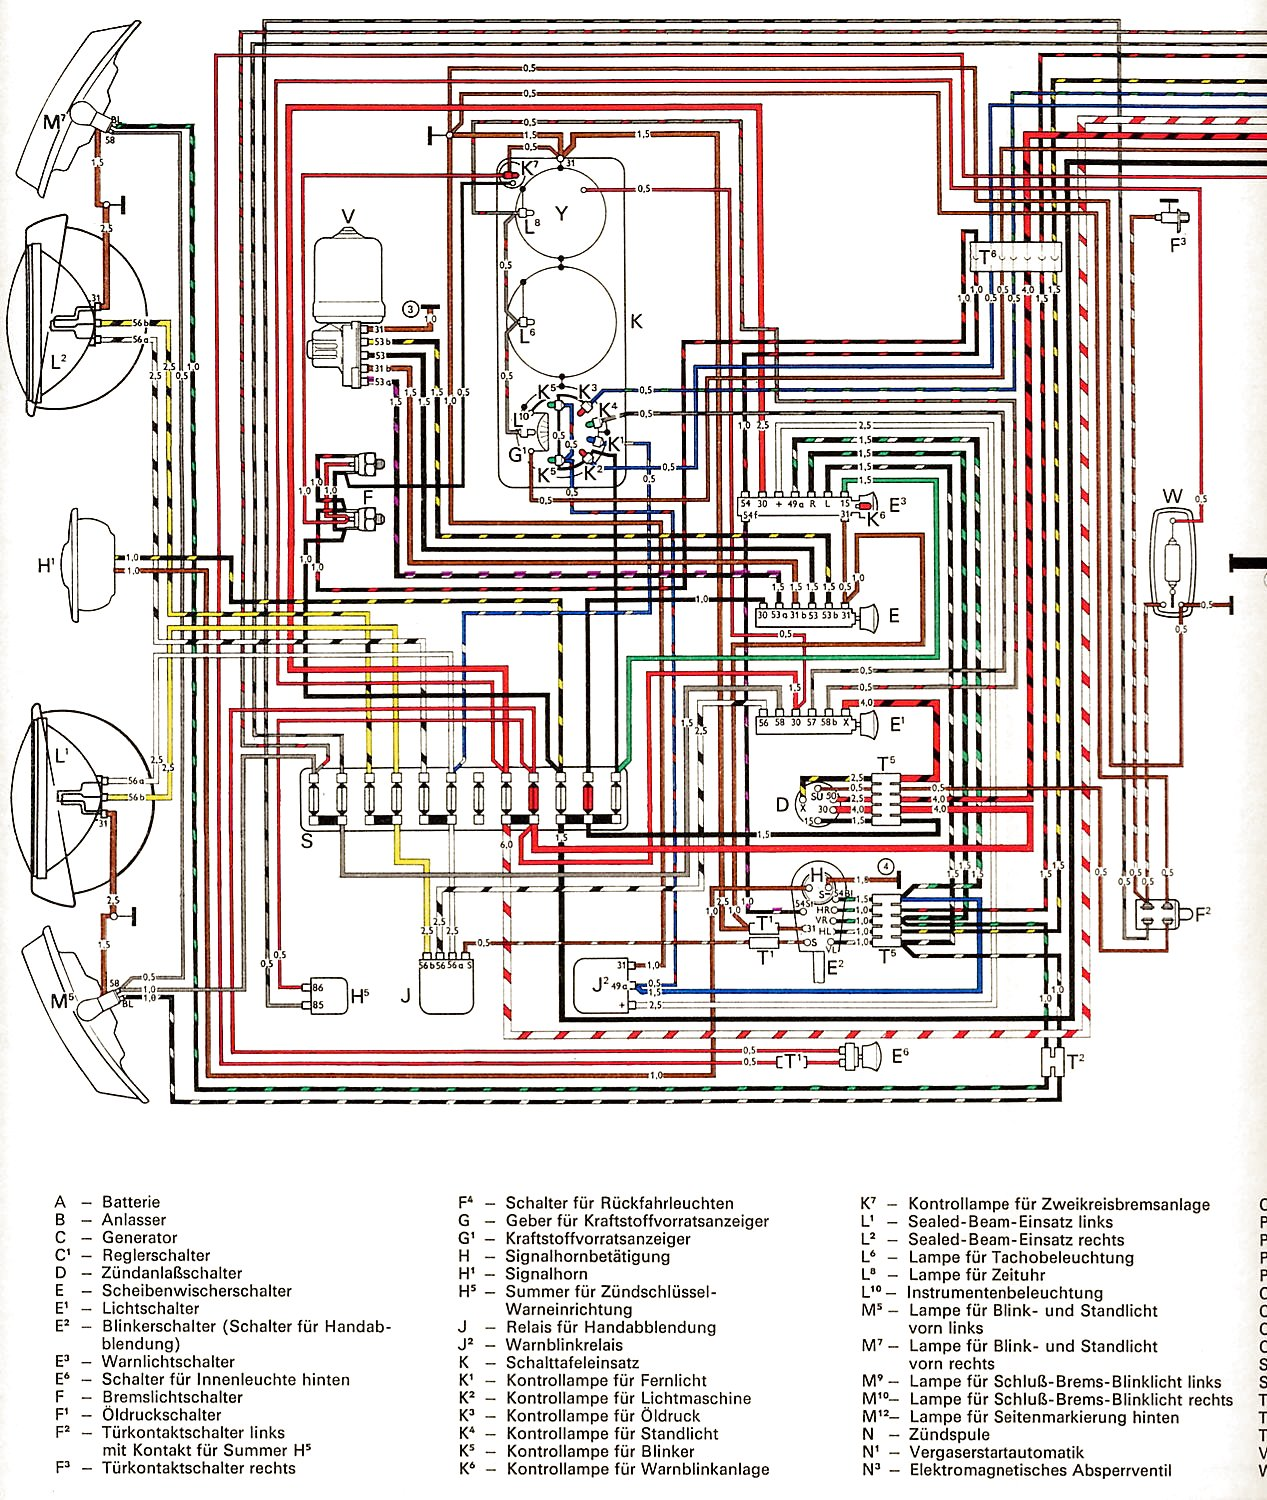 vw fuse box diagram, vw wiring harness, vw generator diagram, vw steering diagrams, vw carb diagram, vw fuel pump diagram, vw bug electronic ignition wiring, vw beetle diagram, vw engine wiring, vw engine diagram, vw alternator wiring, vw light switch wiring, vw golf fuse diagram, vw beetle wiring, vw headlight wiring, volkswagen beetle body diagrams, electrical diagrams, vw bug wiper motor wiring, vw distributor diagram, vw cooling system diagram, on vw t4 leisure battery wiring diagram